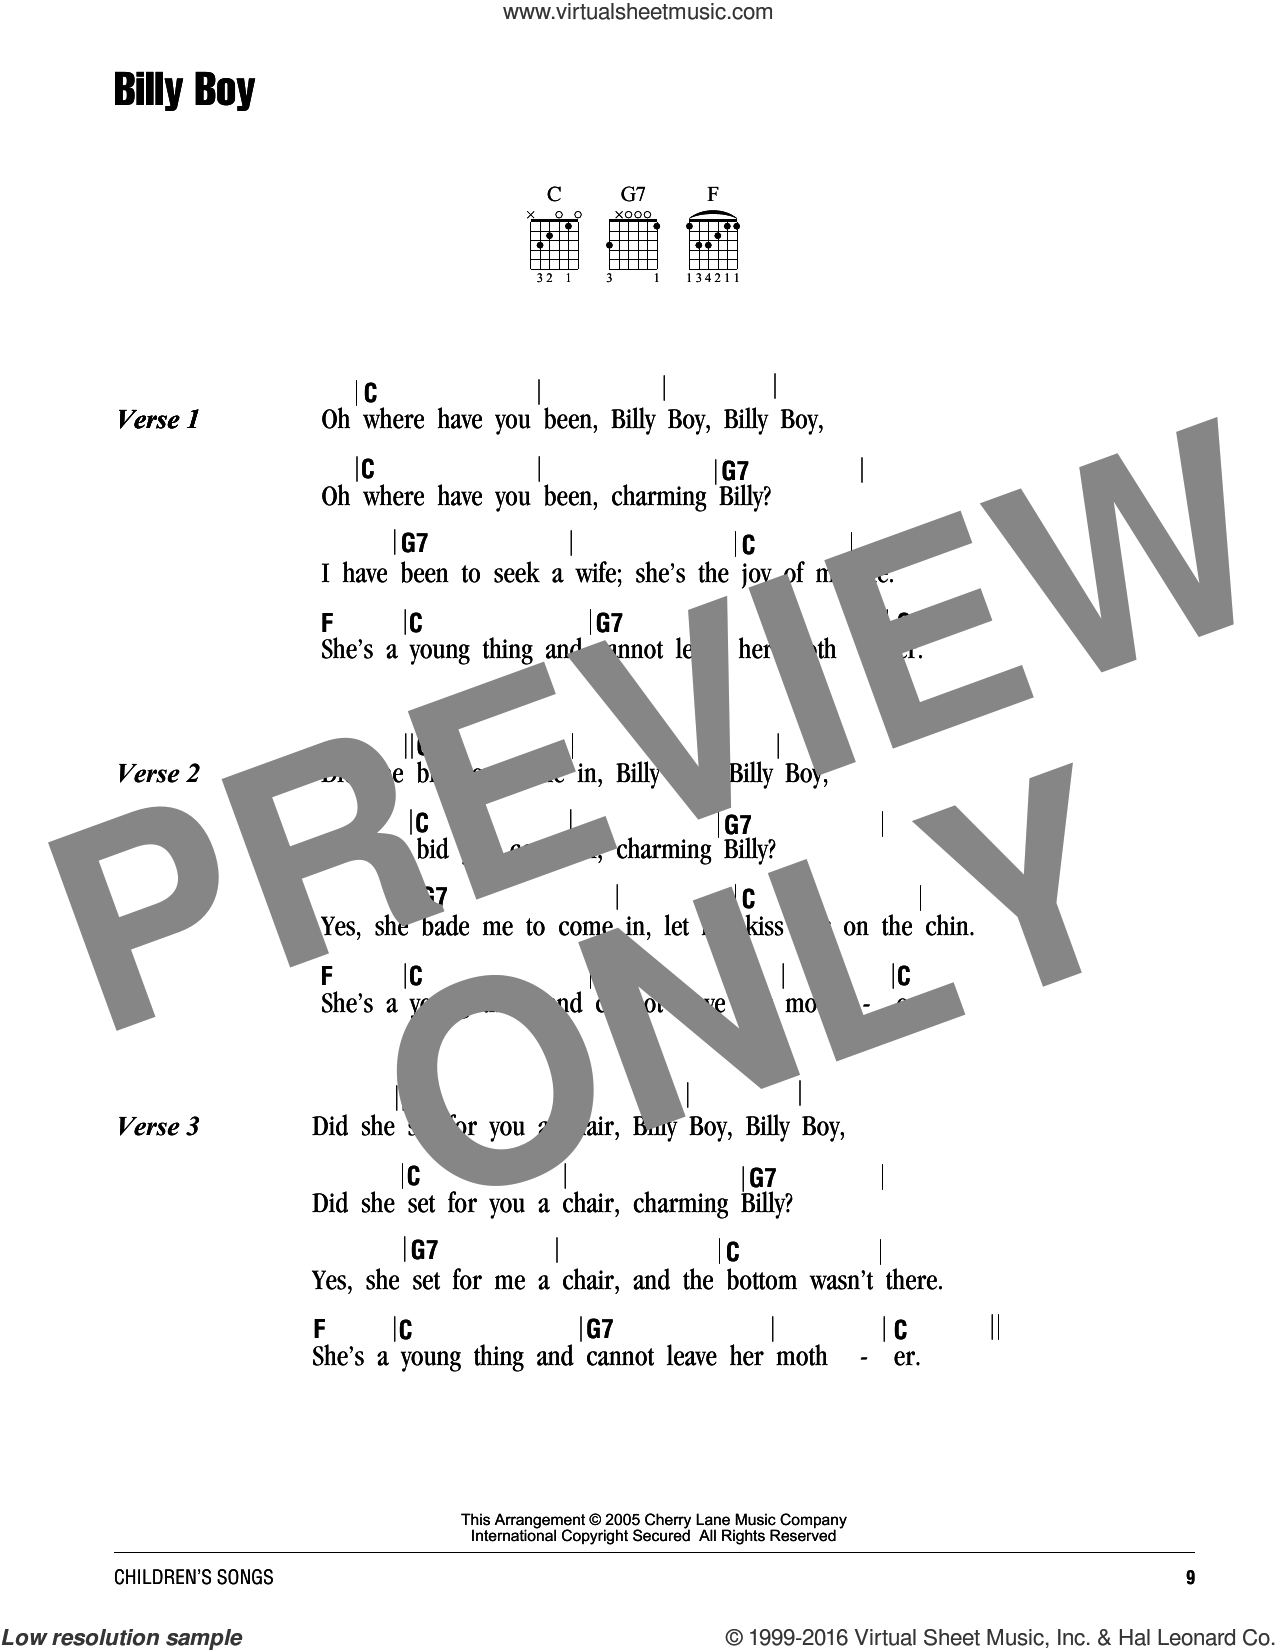 Billy Boy sheet music for guitar (chords). Score Image Preview.